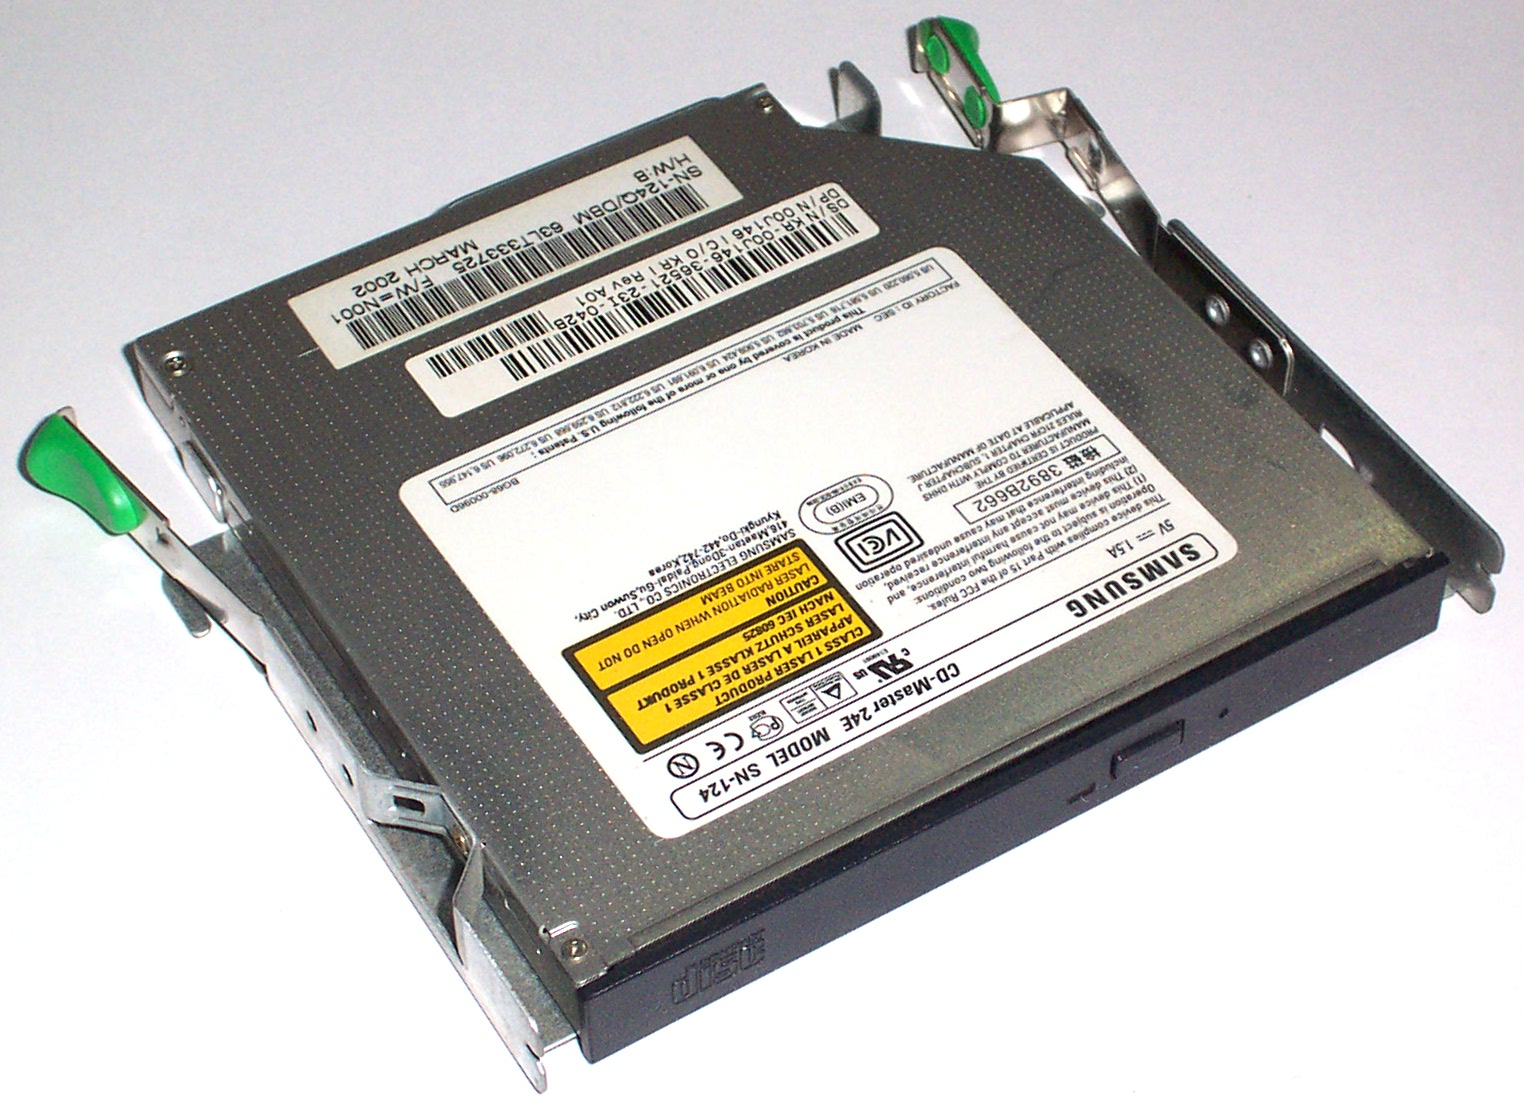 DELL GX150 CD ROM DRIVER FOR WINDOWS 7